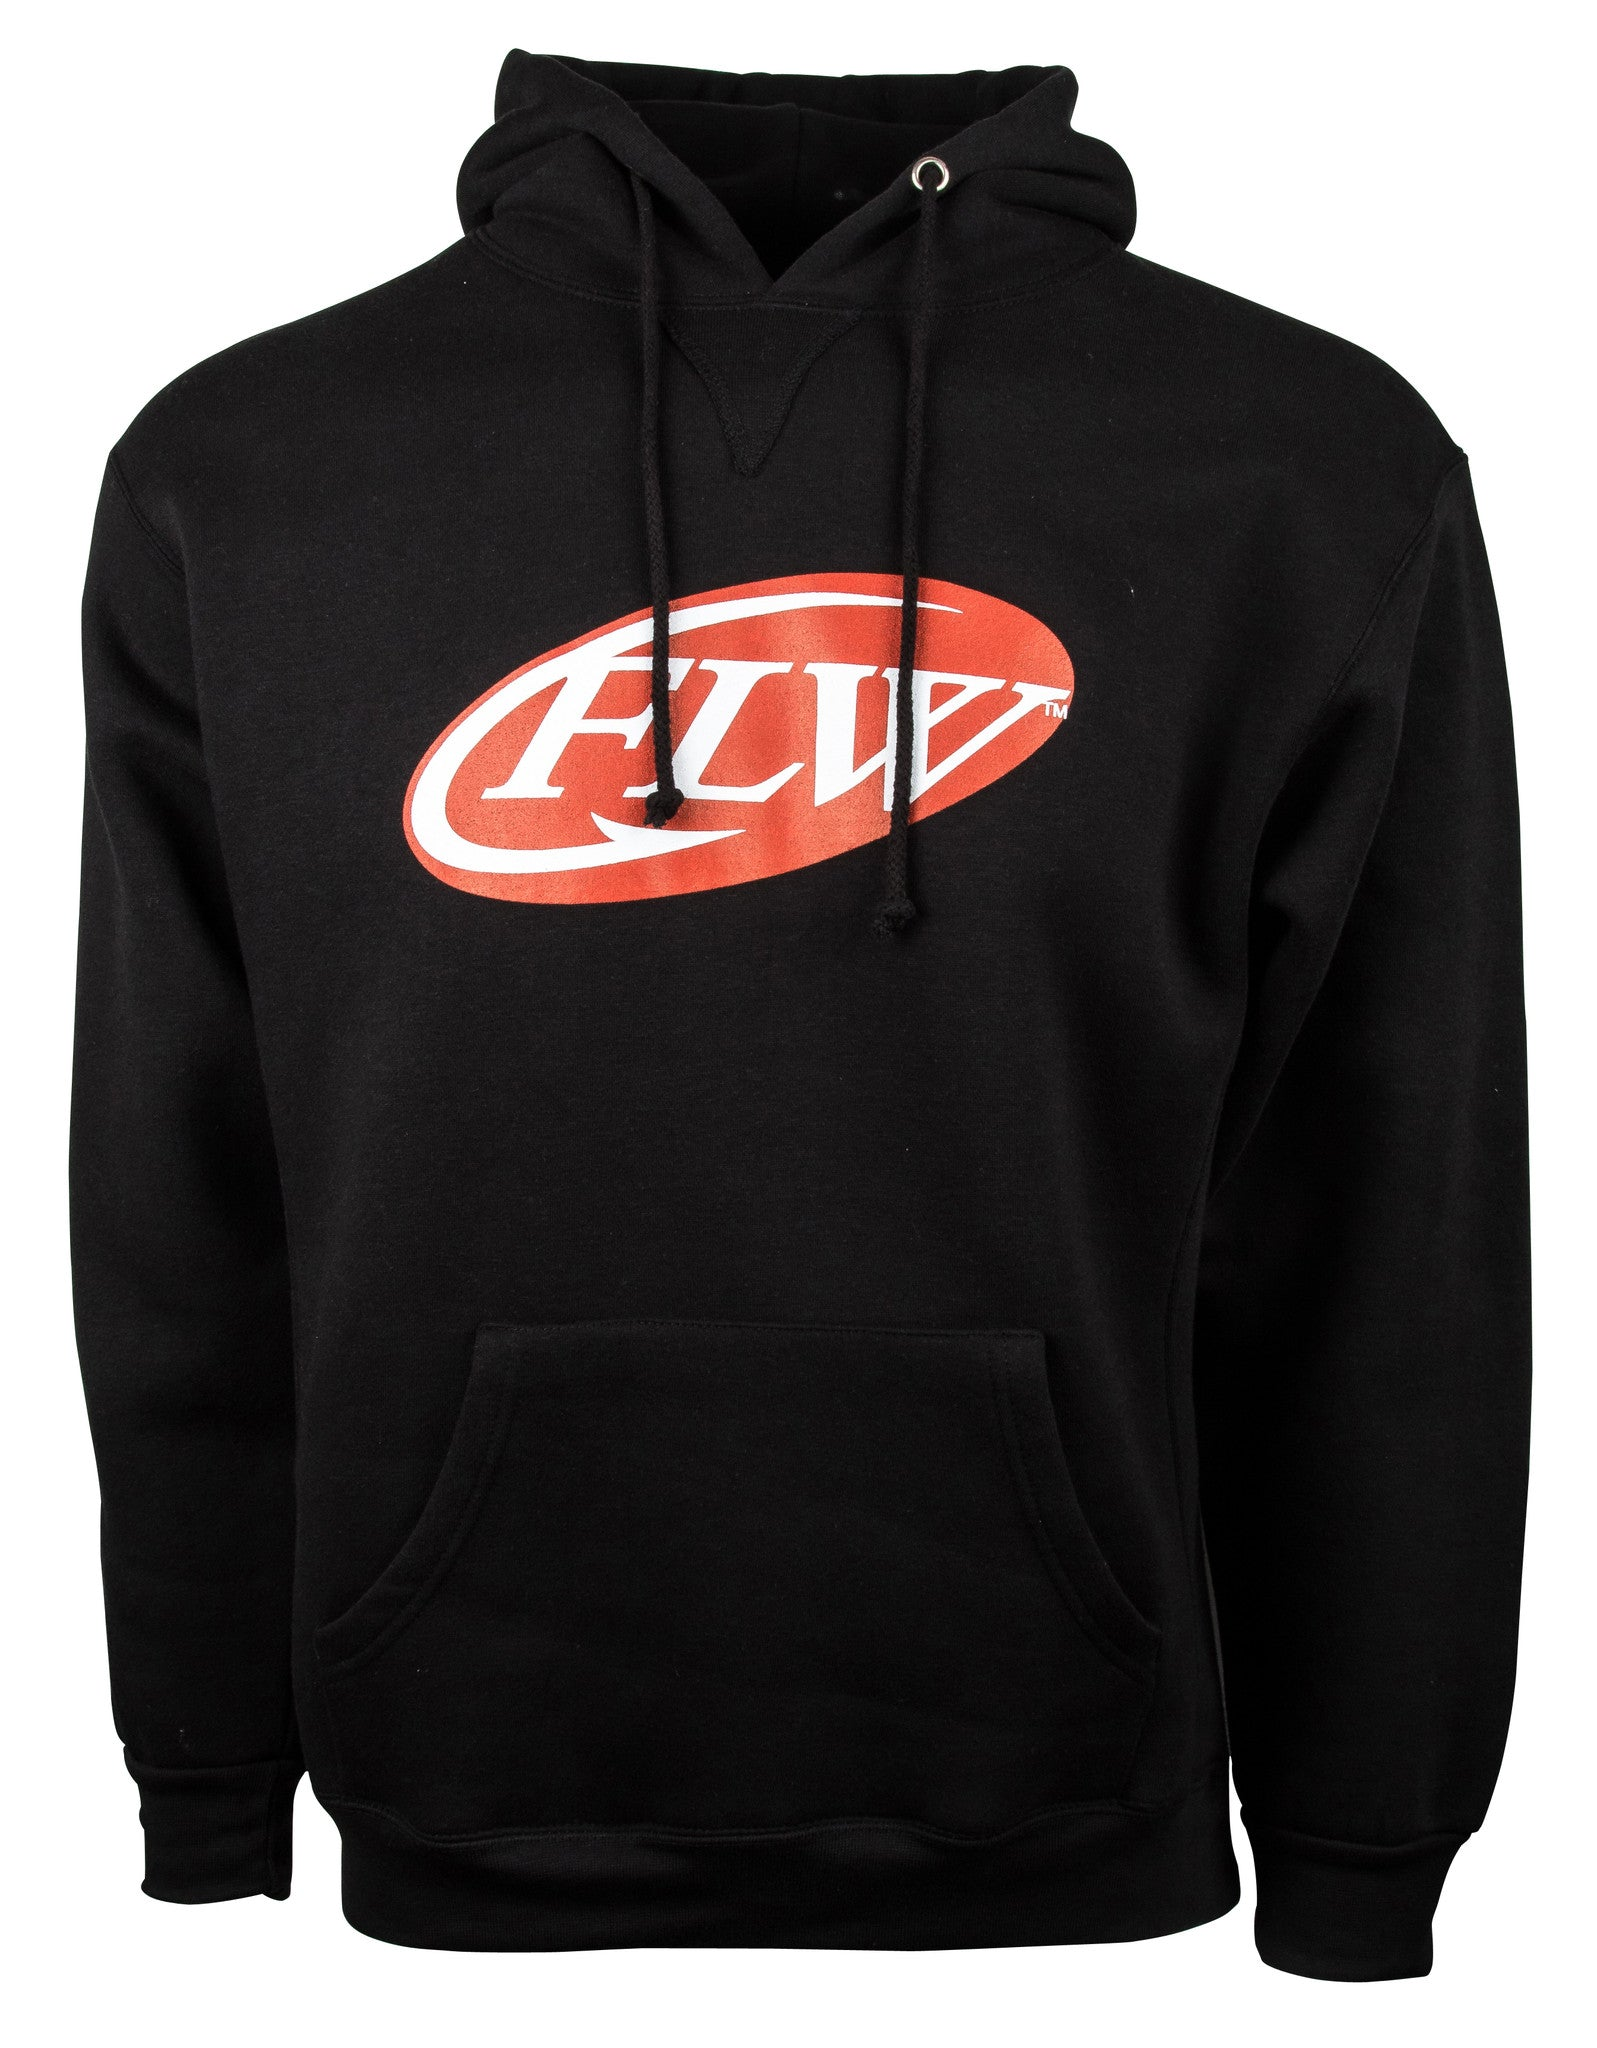 FLW hooded sweatshirt.  Black sweatshirt with the iconic red and white FLW centered on the chest.